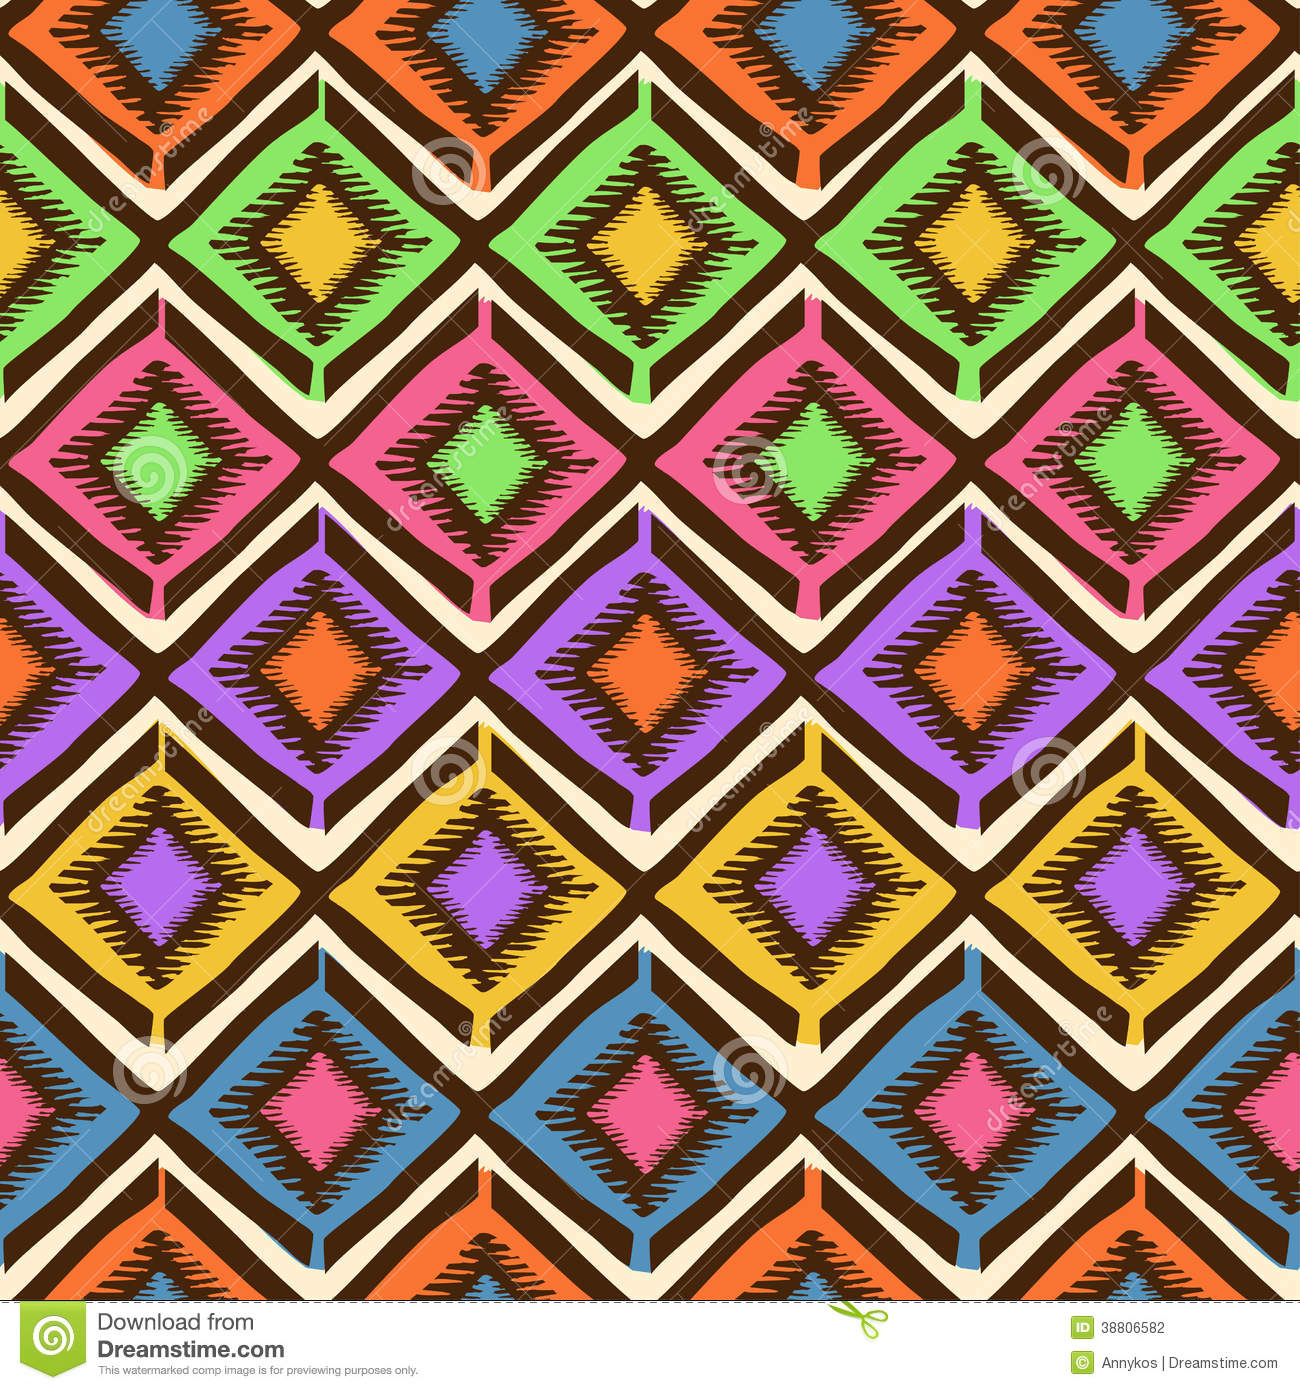 Ethnic Tribal Geometric Seamless Pattern Stock Vector - Image ...